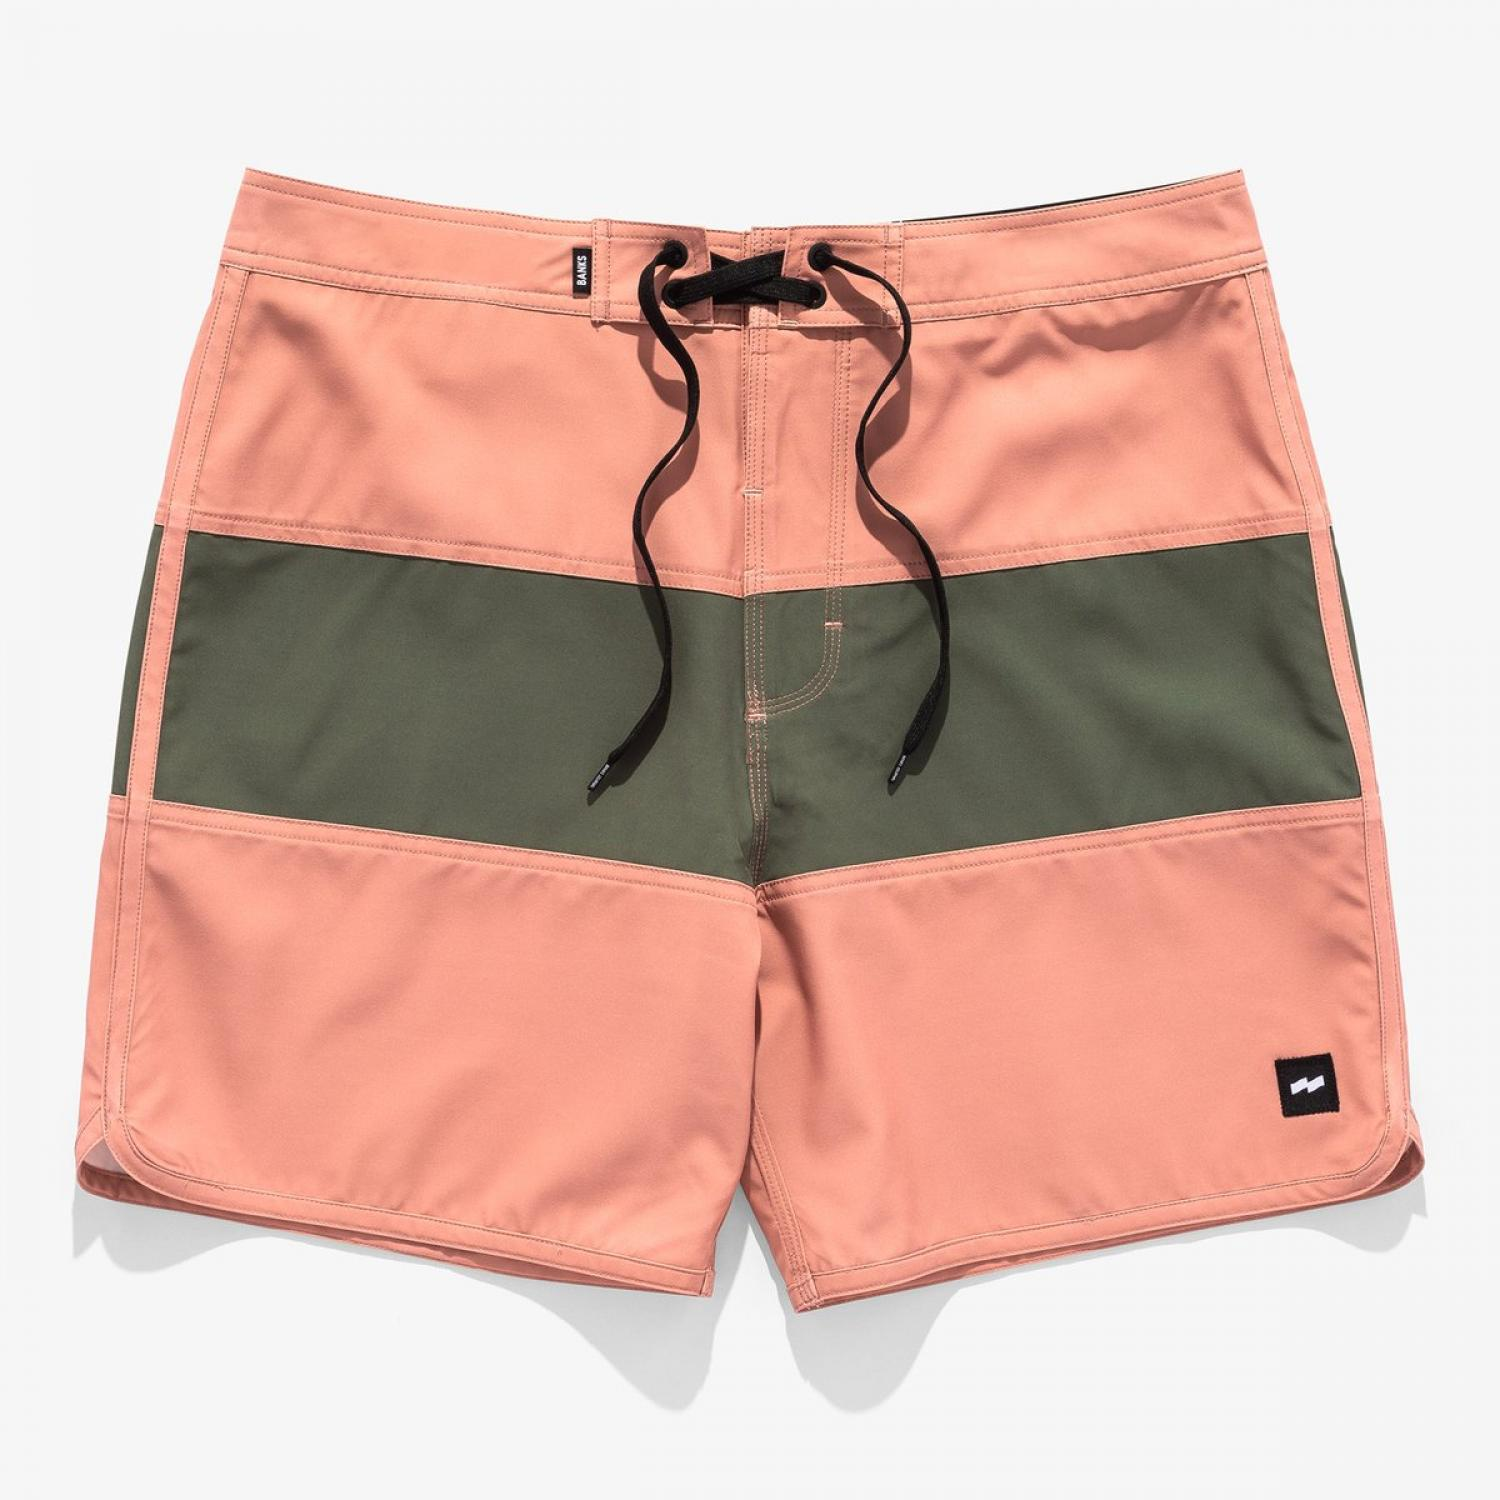 BANKS JOURNAL BANKSIA BOARDSHORT 17inch